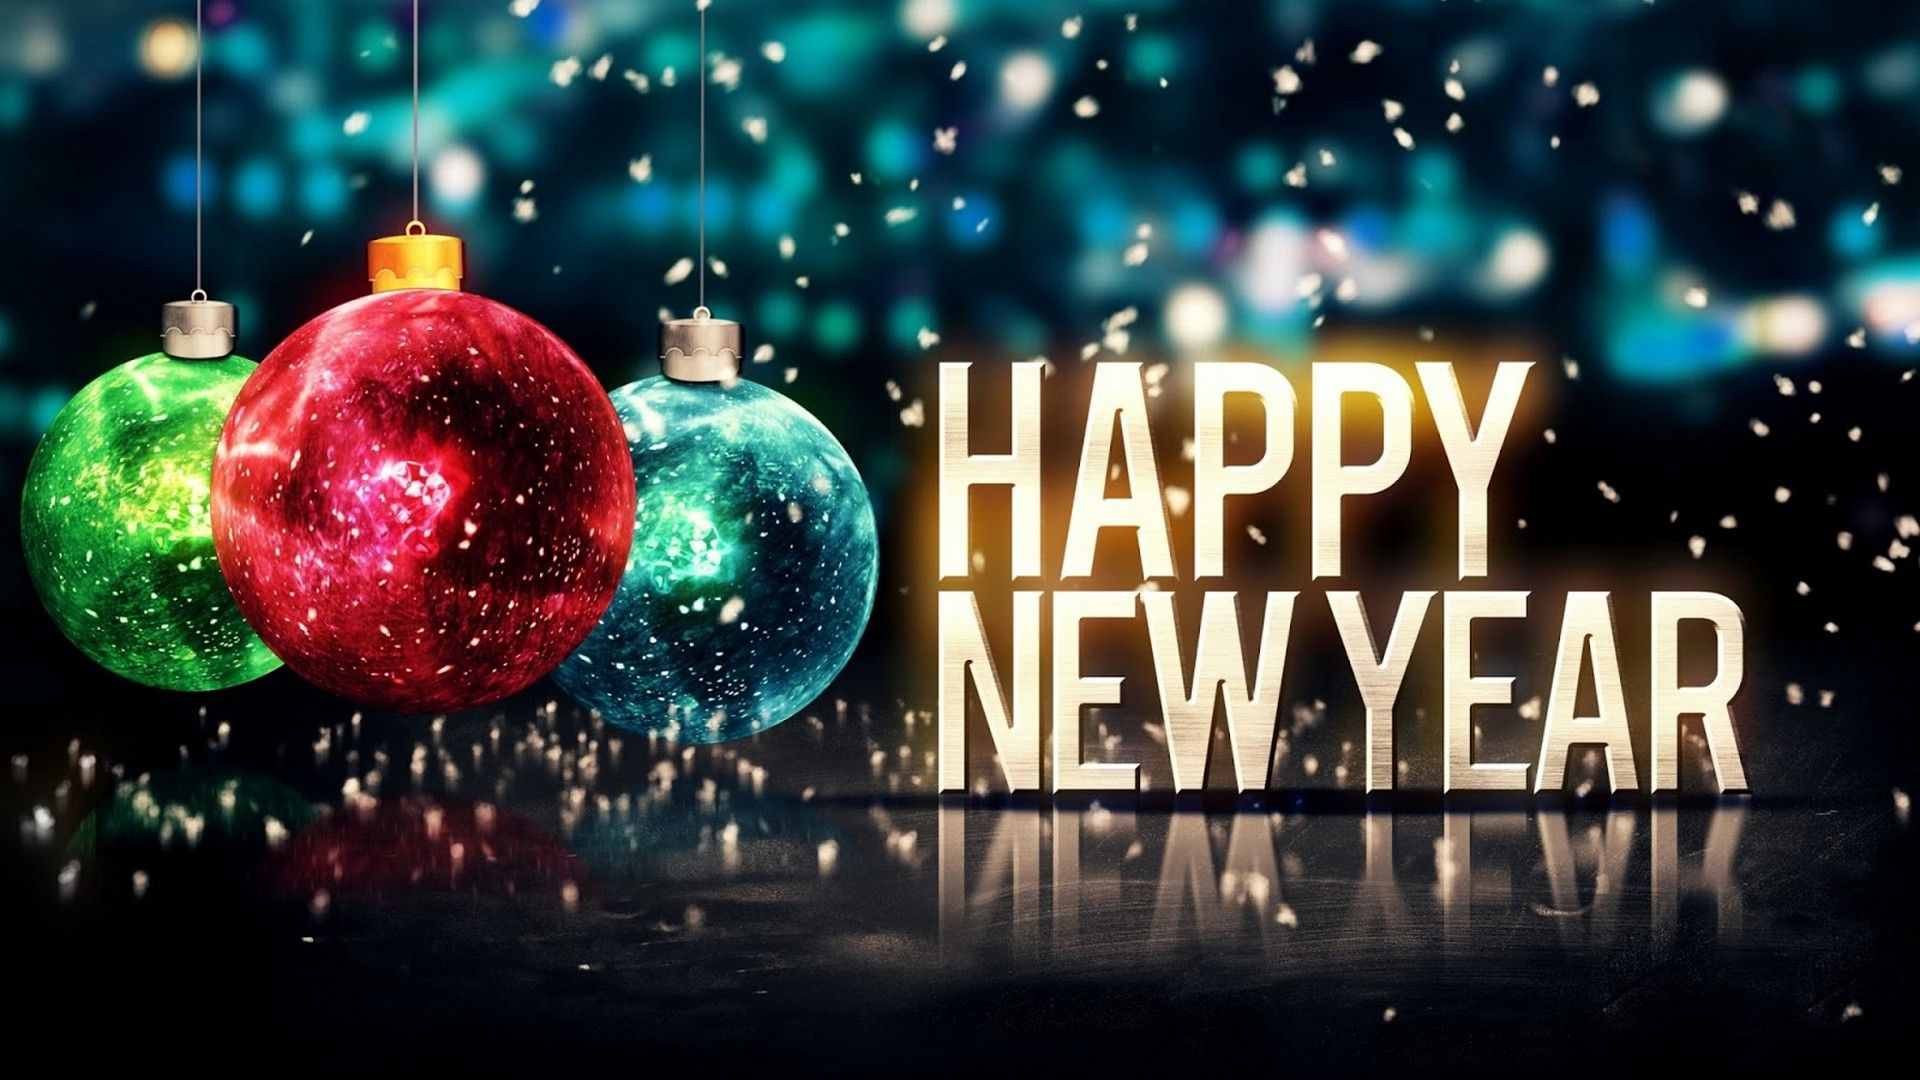 Good Happy New Year Ornament 2018 Wallpaper   2018 Wallpapers HD